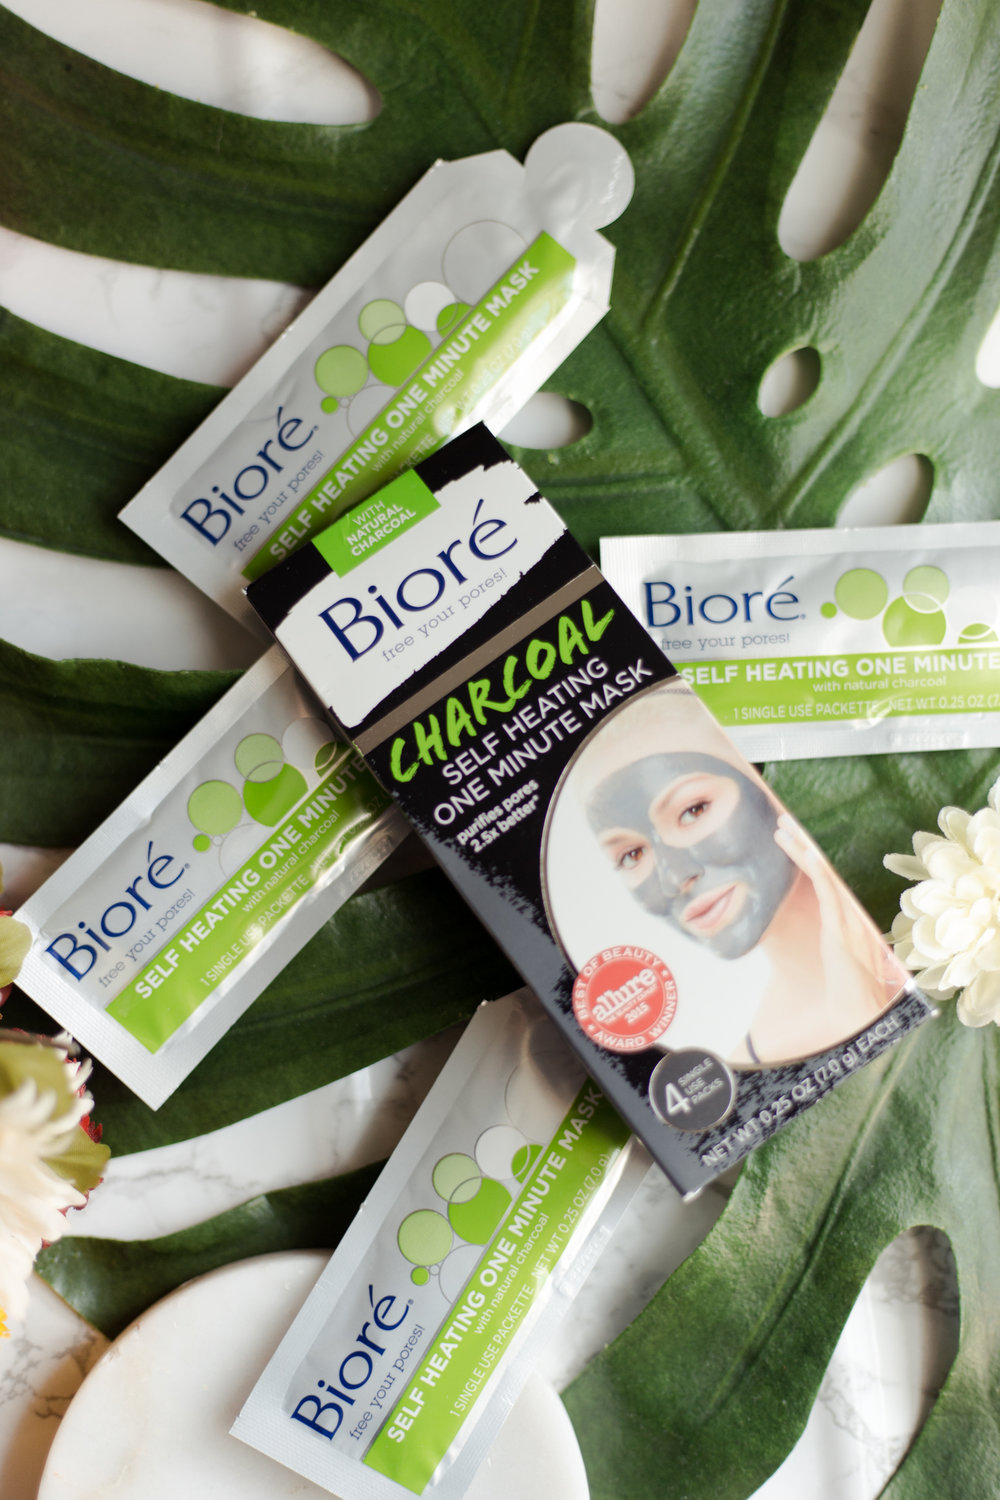 How To Keep Your Face Free of Blackheads with Bioré Self Heating One Minute Mask